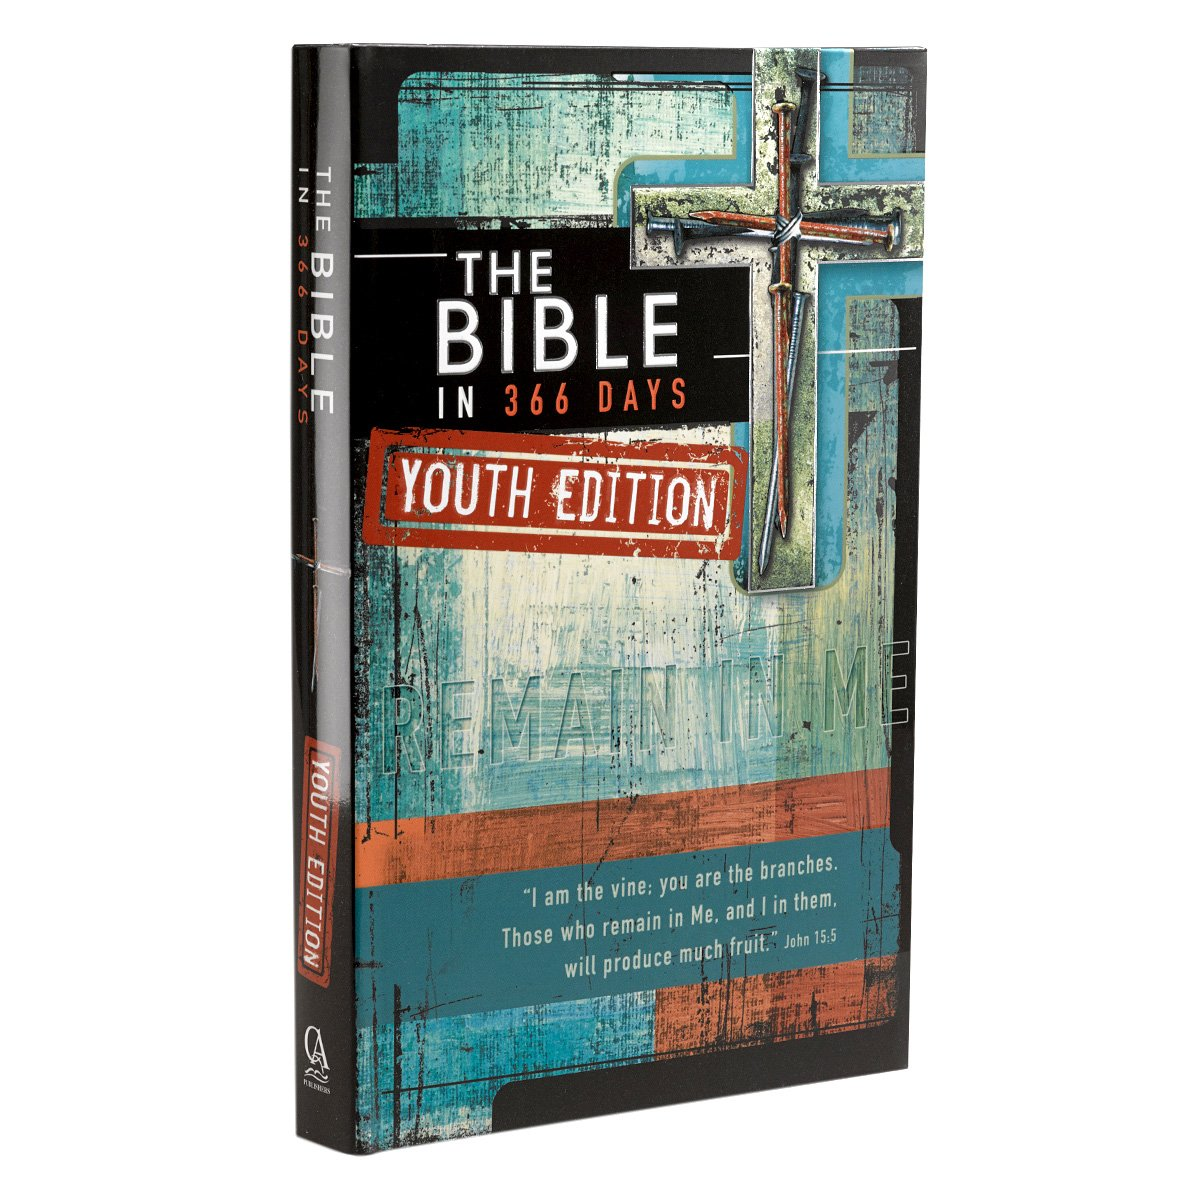 The Bible In 366 Days Youth Edition